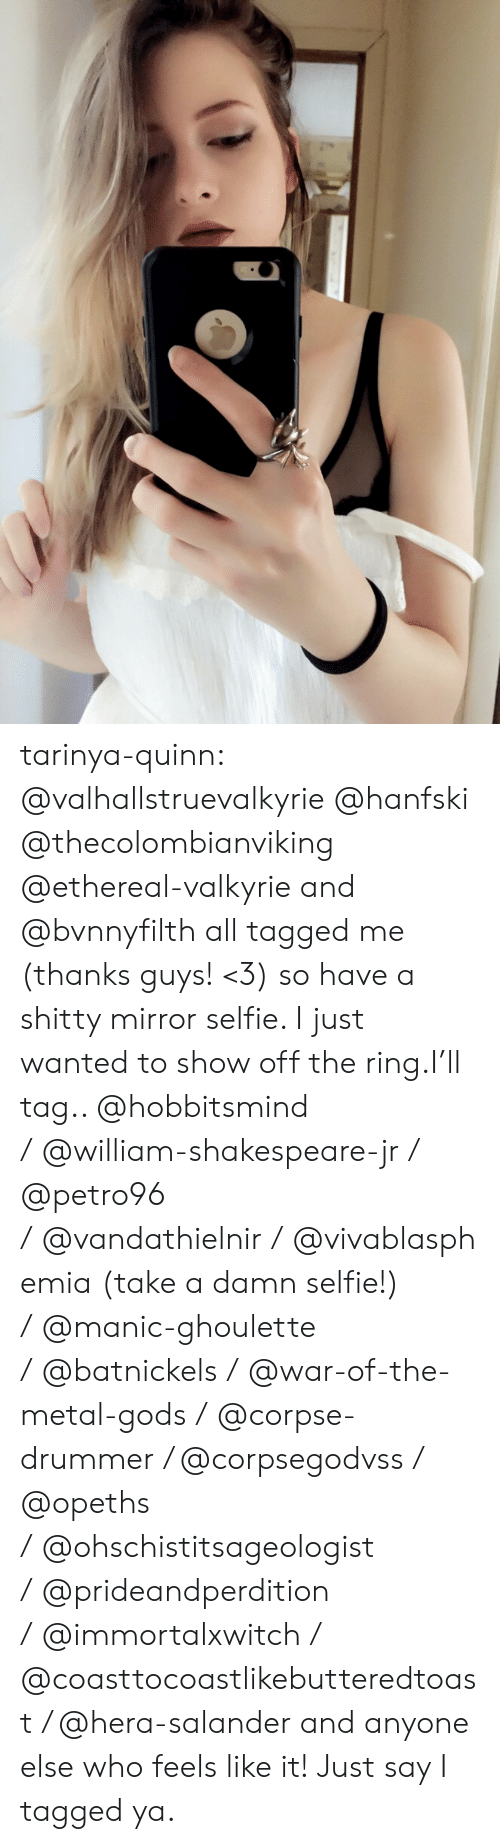 valkyrie: tarinya-quinn:  @valhallstruevalkyrie @hanfski @thecolombianviking @ethereal-valkyrie and @bvnnyfilth all tagged me (thanks guys! <3) so have a shitty mirror selfie. I just wanted to show off the ring.I'll tag.. @hobbitsmind /@william-shakespeare-jr/ @petro96 /@vandathielnir/@vivablasphemia (take a damn selfie!) /@manic-ghoulette /@batnickels/@war-of-the-metal-gods /@corpse-drummer / @corpsegodvss / @opeths /@ohschistitsageologist /@prideandperdition /@immortalxwitch / @coasttocoastlikebutteredtoast/ @hera-salander and anyone else who feels like it! Just say I tagged ya.